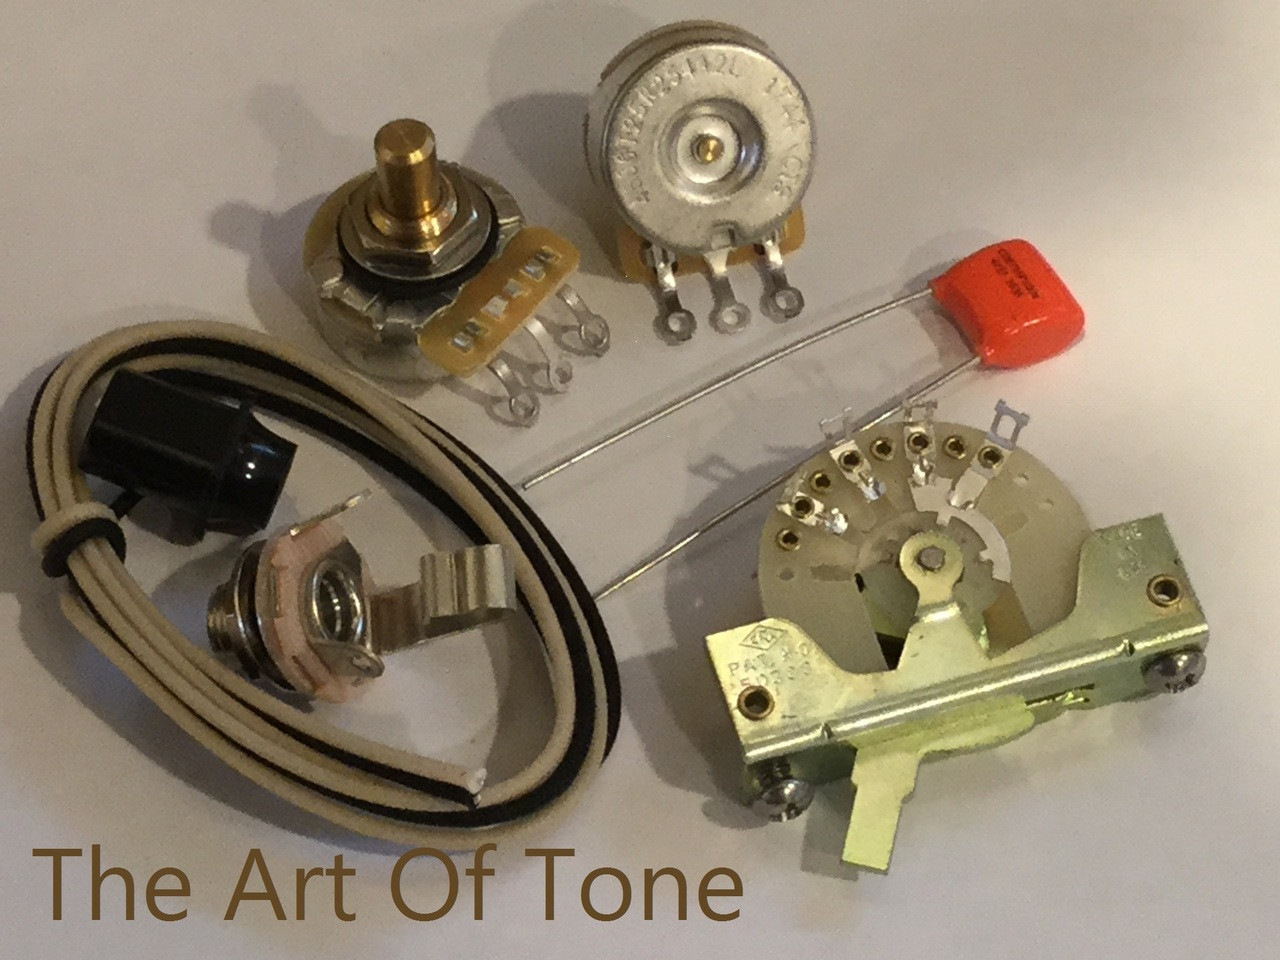 medium resolution of deluxe taot fender telecaster wiring kit the art of tone